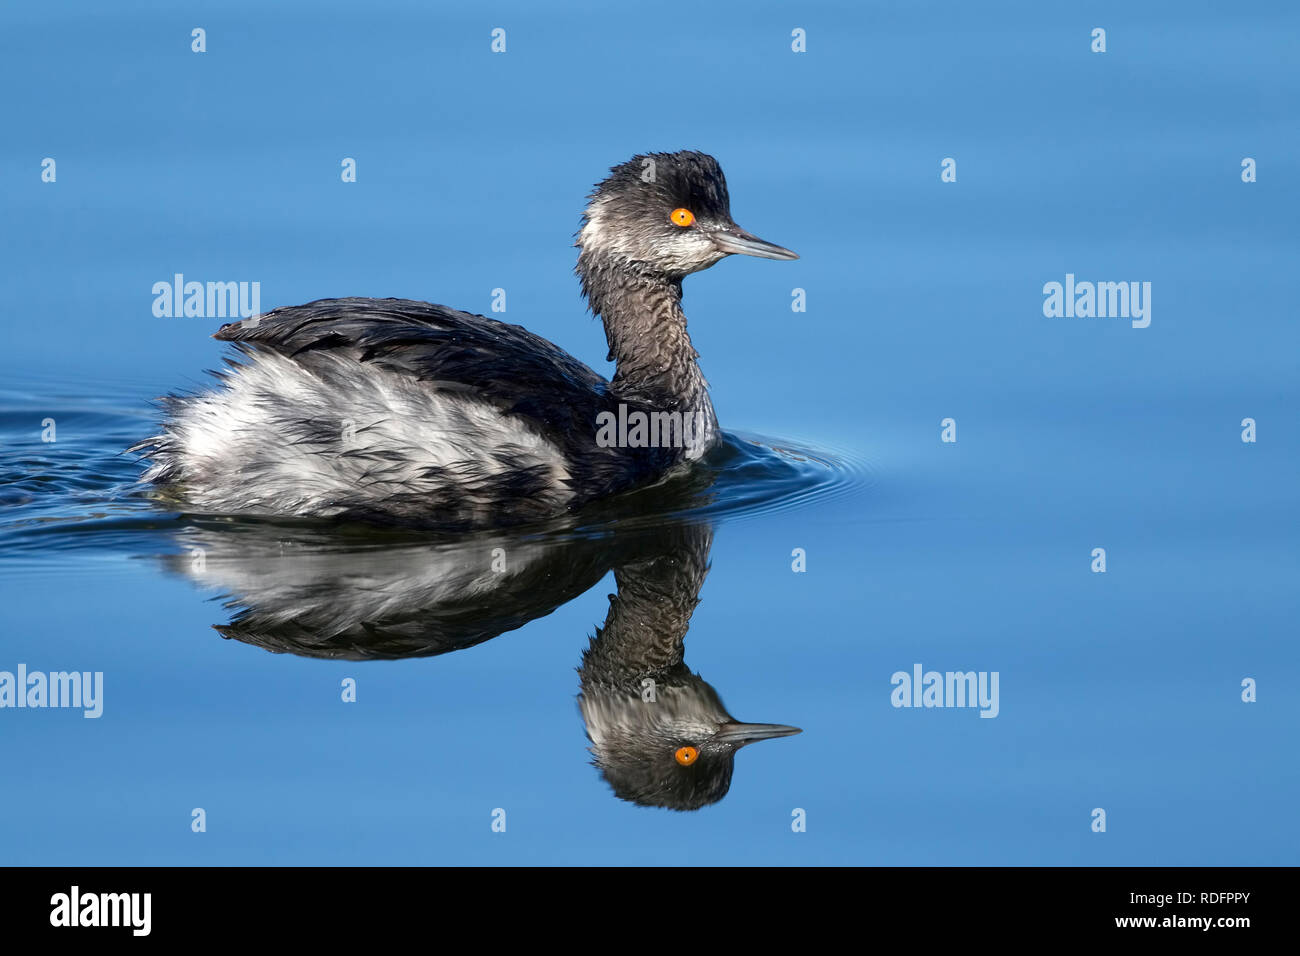 Eared Grebe with reflection in still water - Stock Image